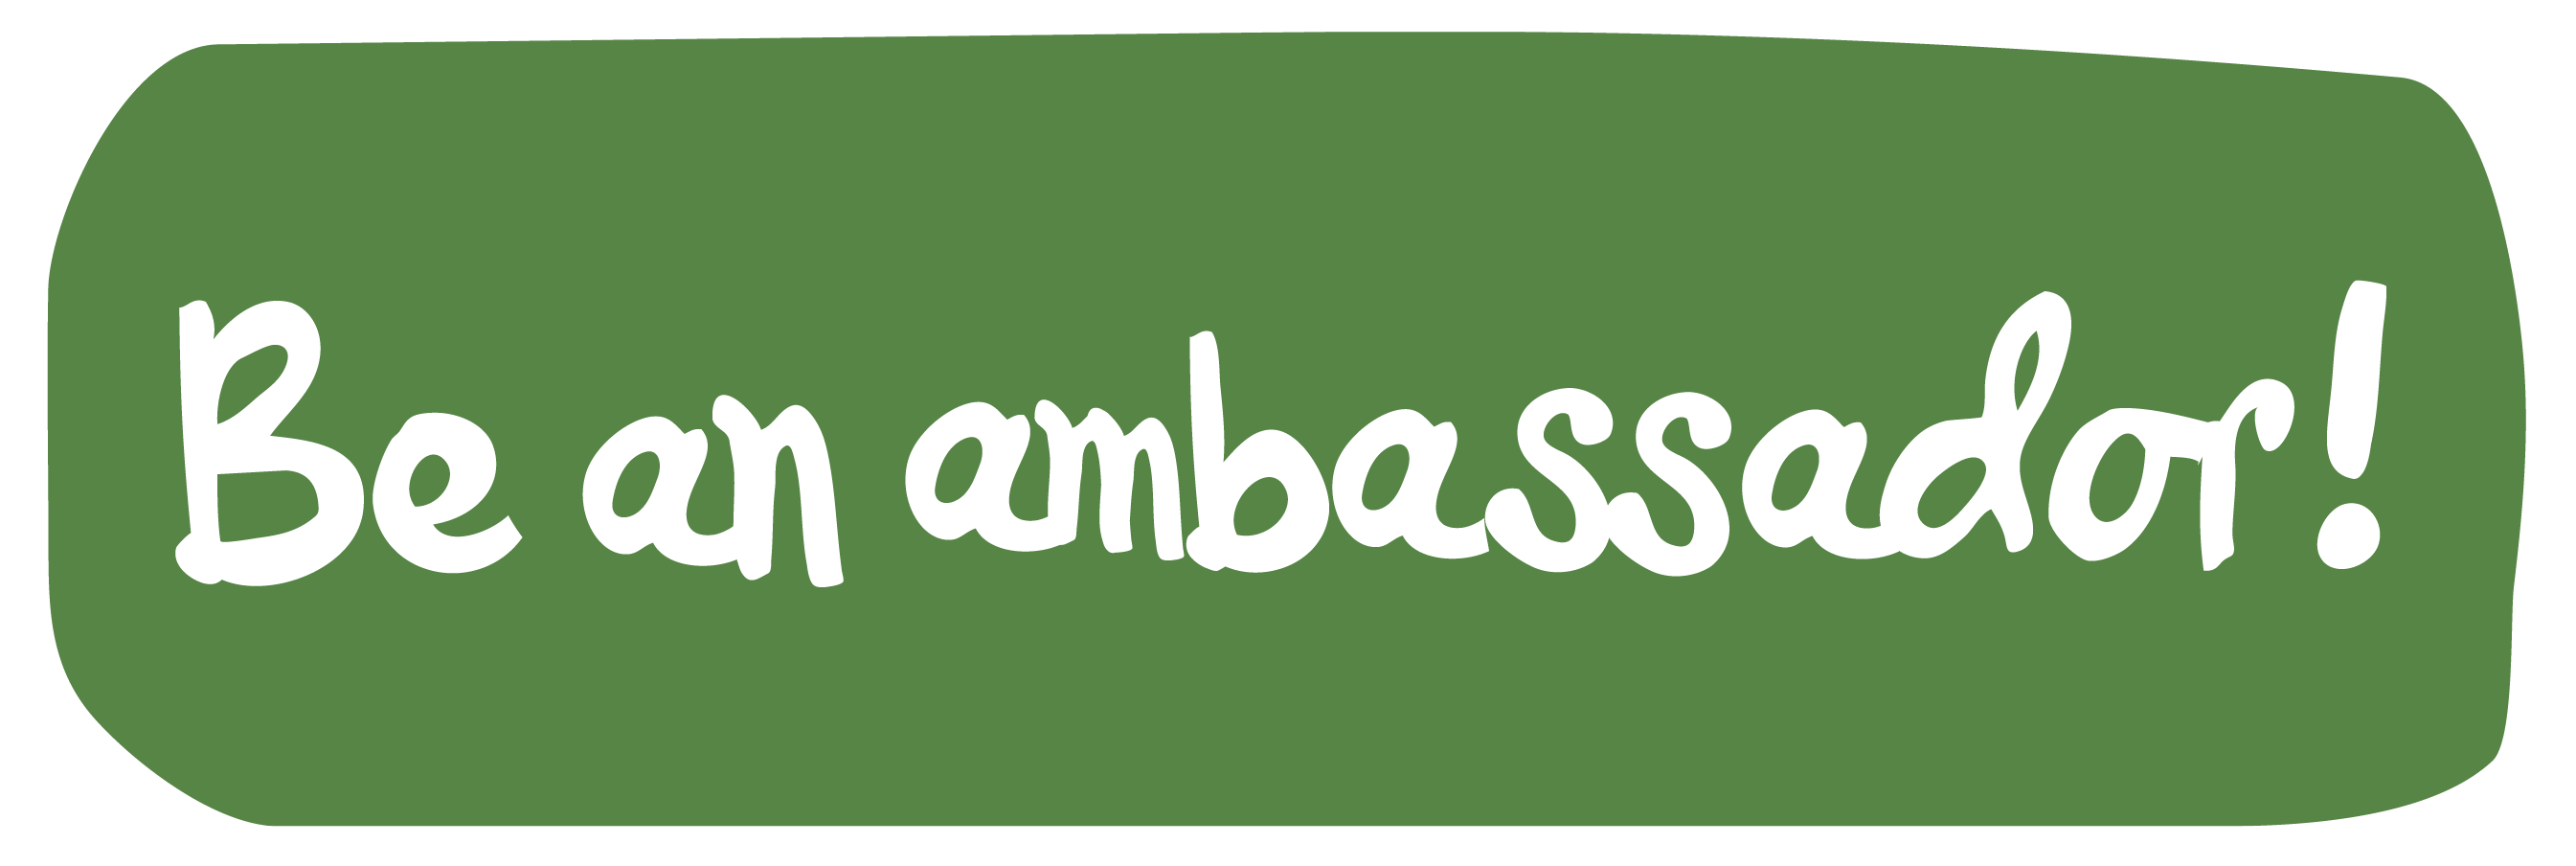 be_an_ambassador_button.png